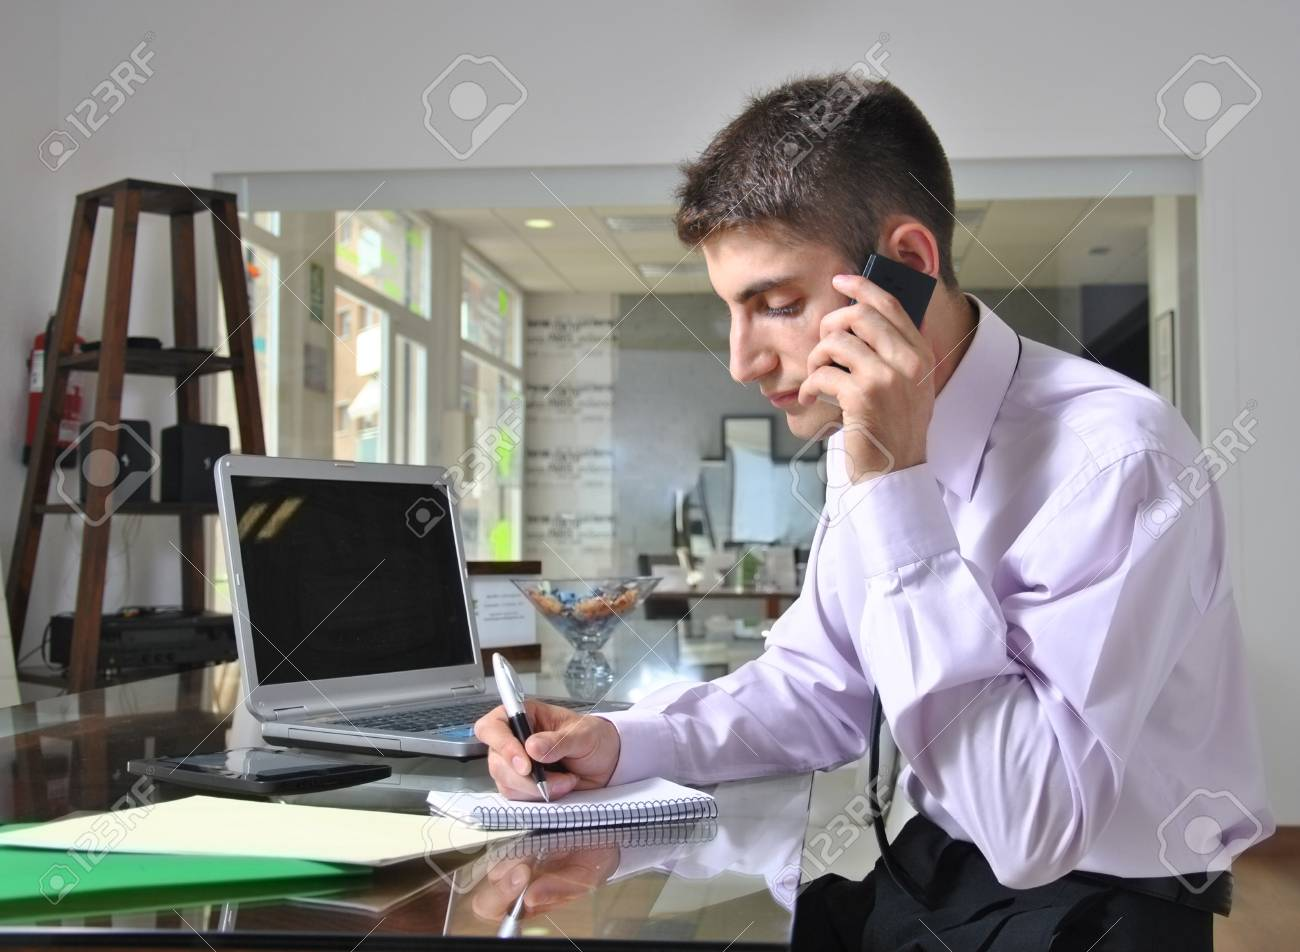 young businessman talking on phone in her office Stock Photo - 22885450